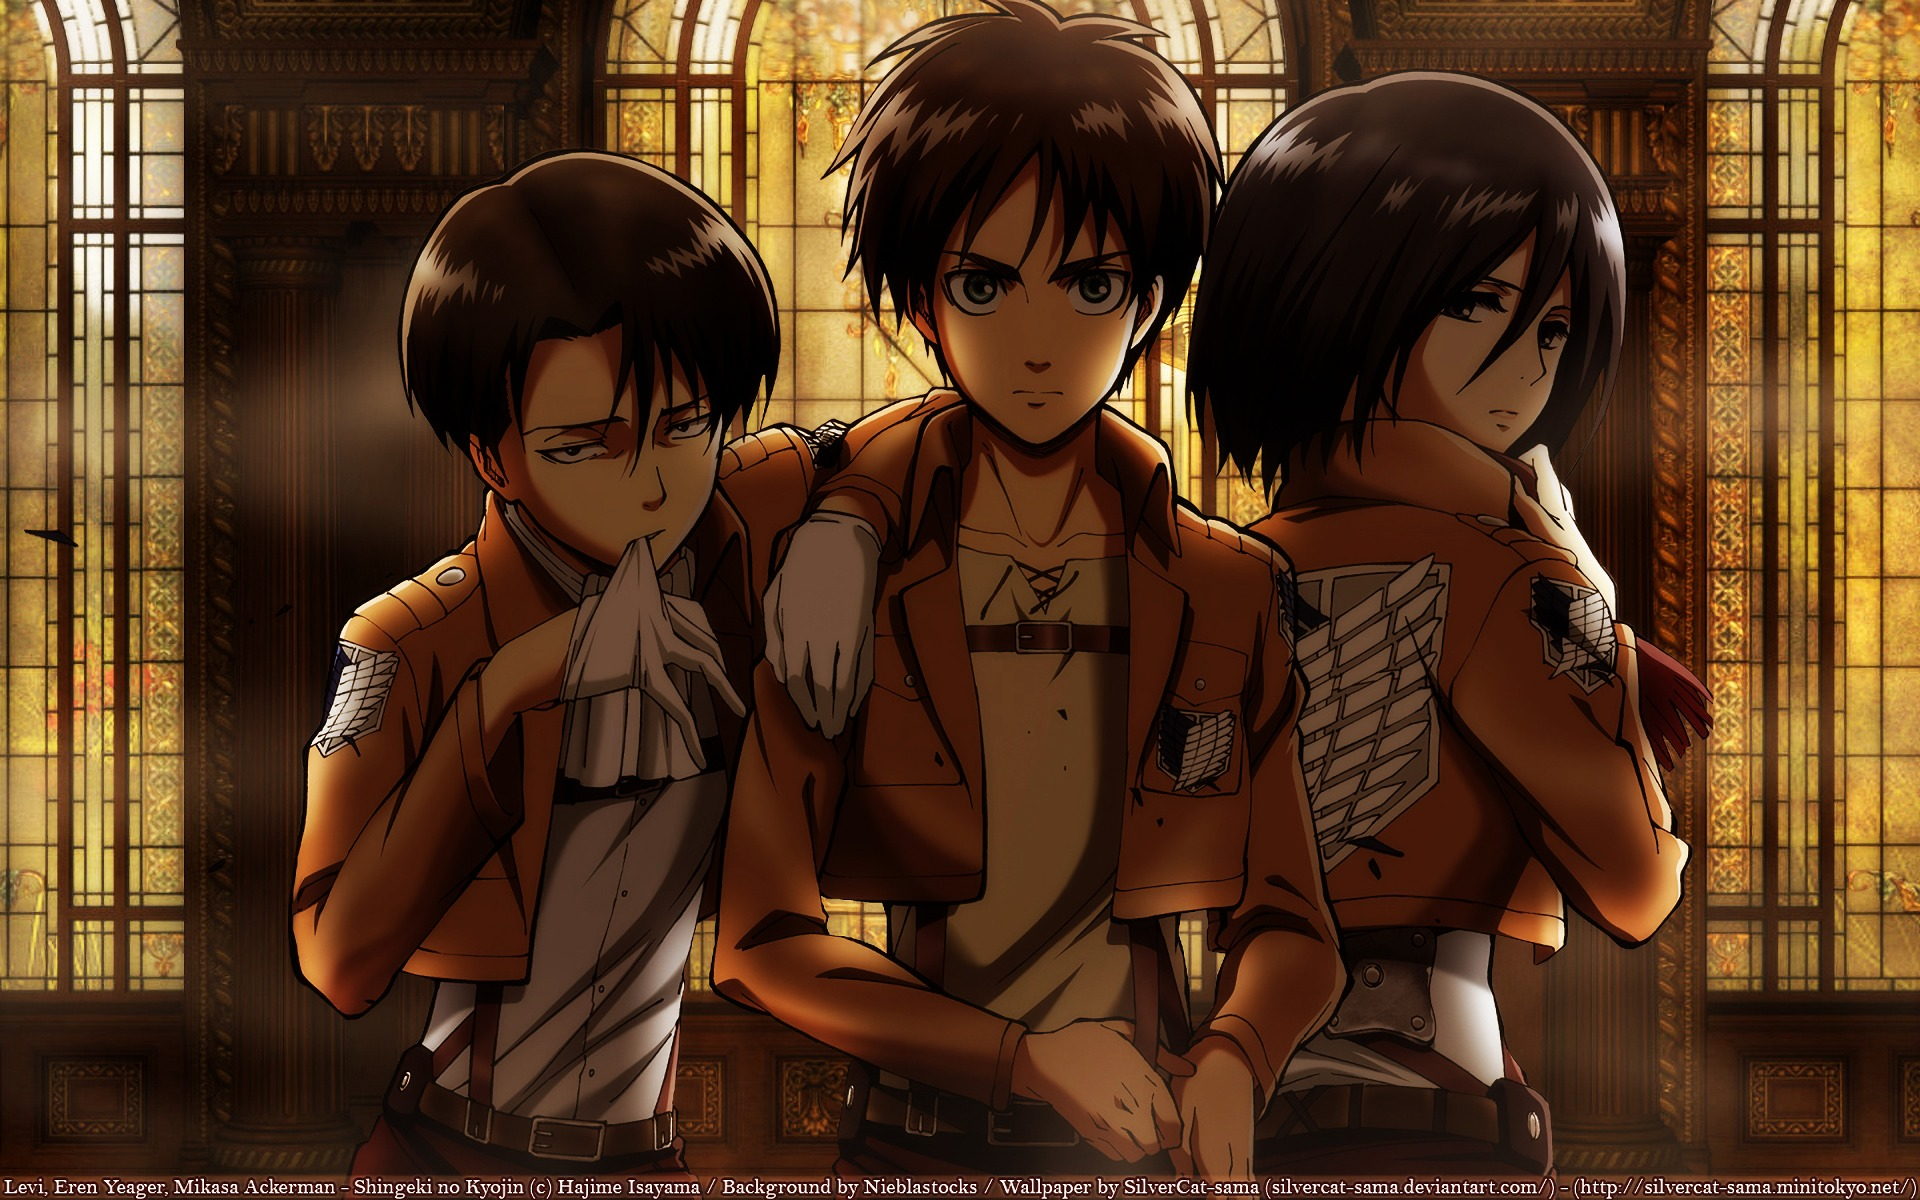 Download Wallpaper From Anime Attack On Titan With Tags Windows 7 Eren Yeager Mikasa Ackerman Levi Ackerman